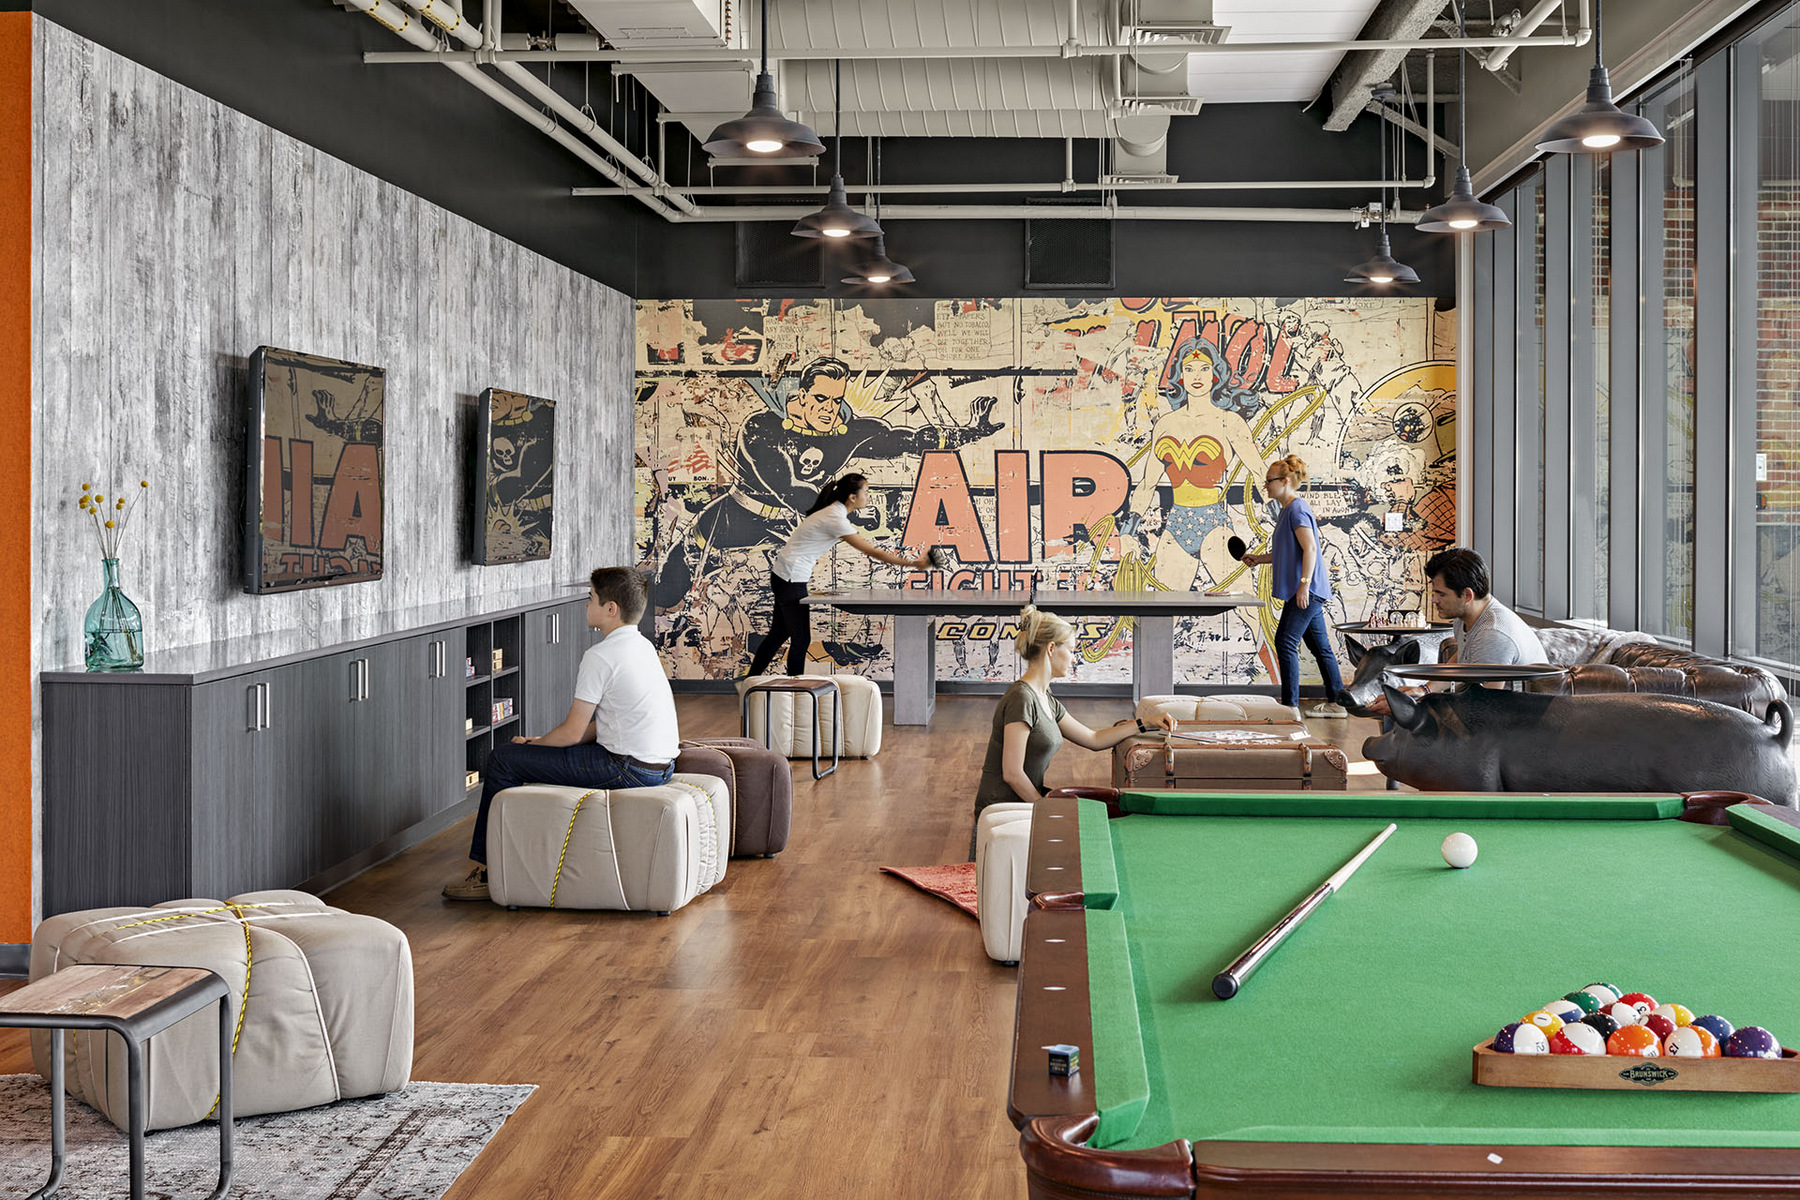 TripAdvisor game room [officesnapshots]